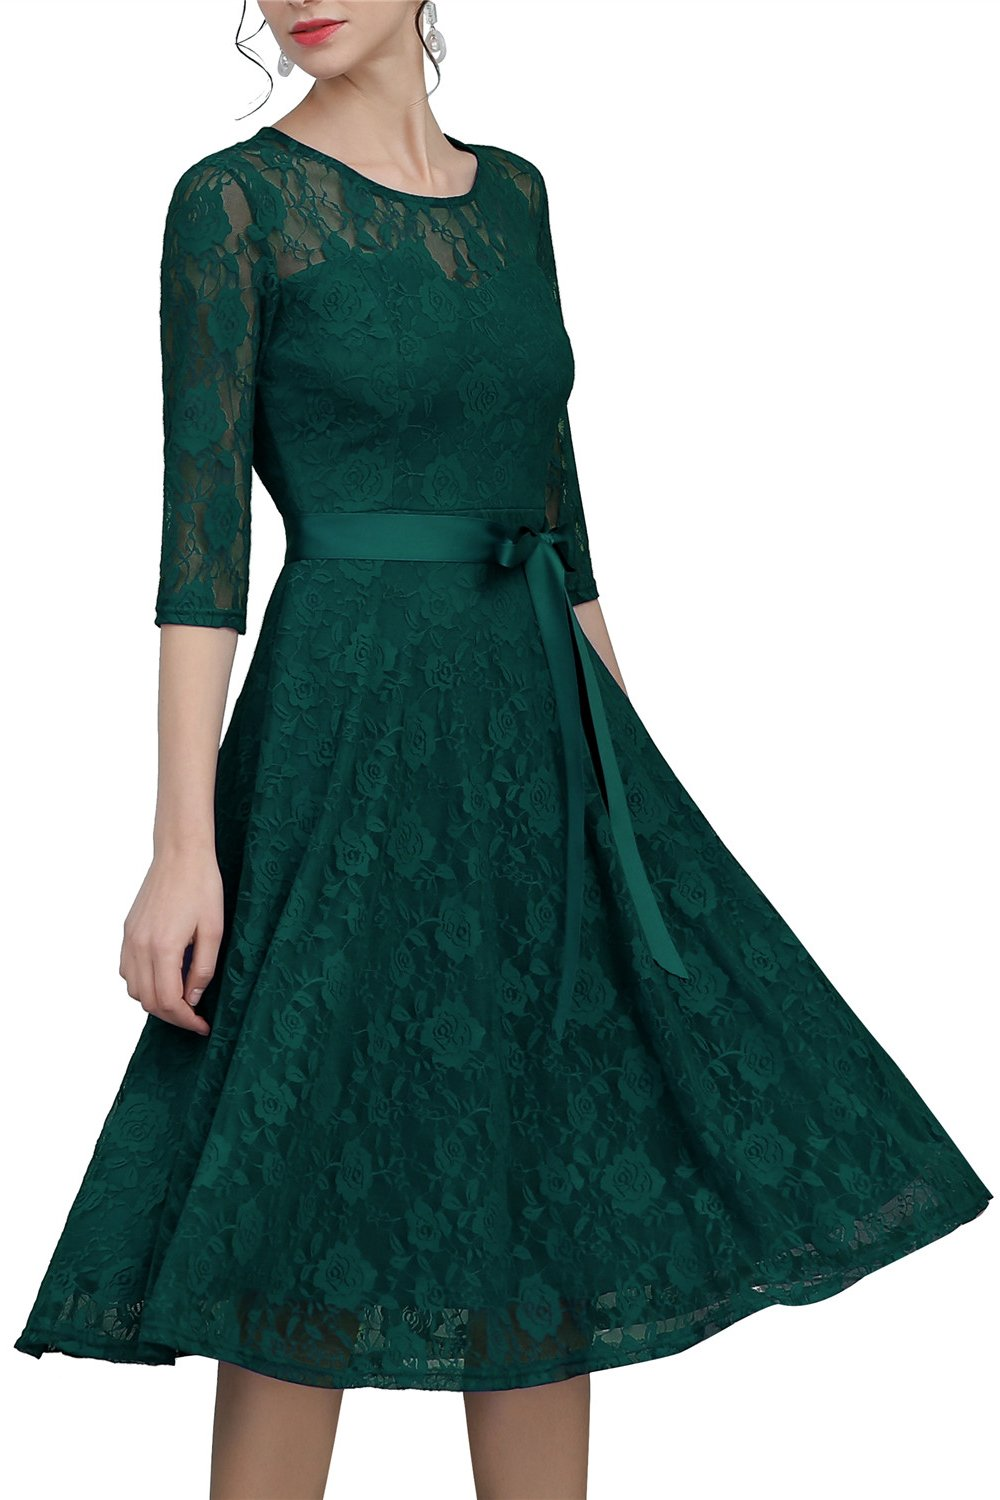 Green Sash Lace Dress